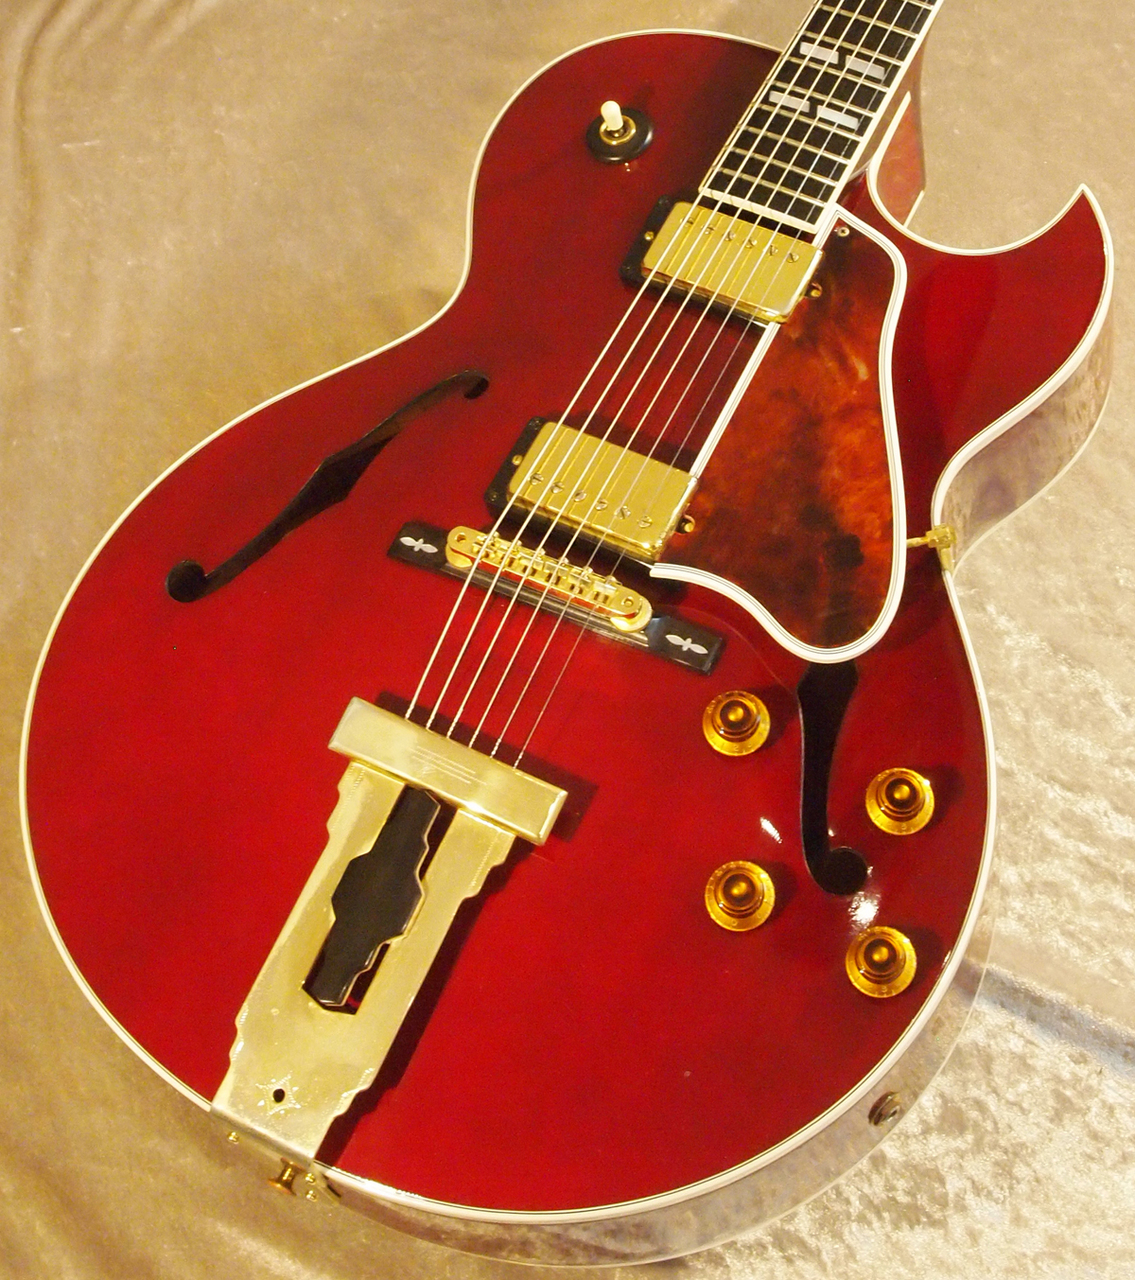 Gibson 【USED】 L-4CES Wine Red  2002年製[メイプルバック] [フルアコ][エボニー指板]【G-CLUB TOKYO】